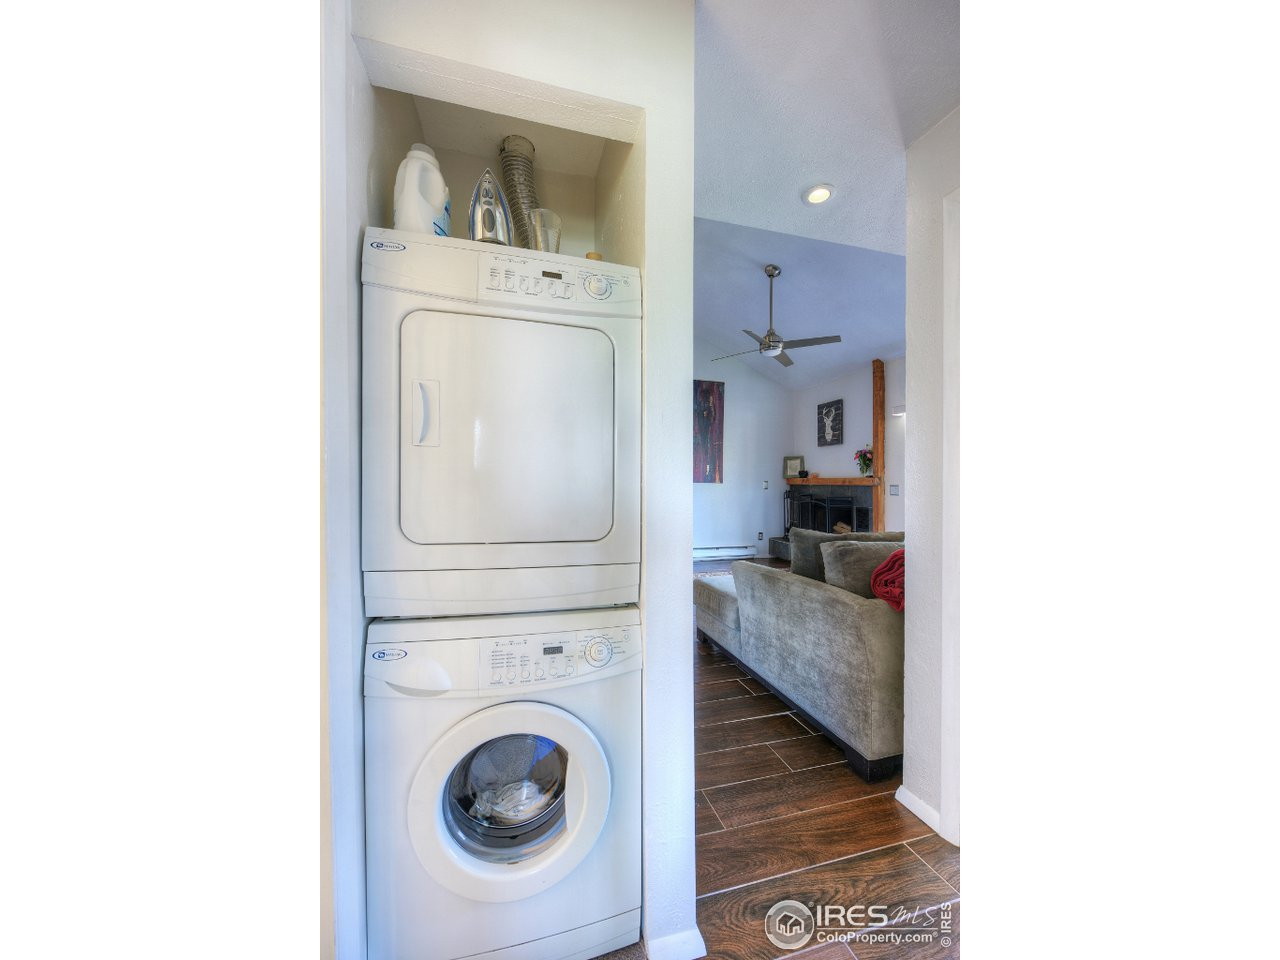 Washer and dryer stays with unit.